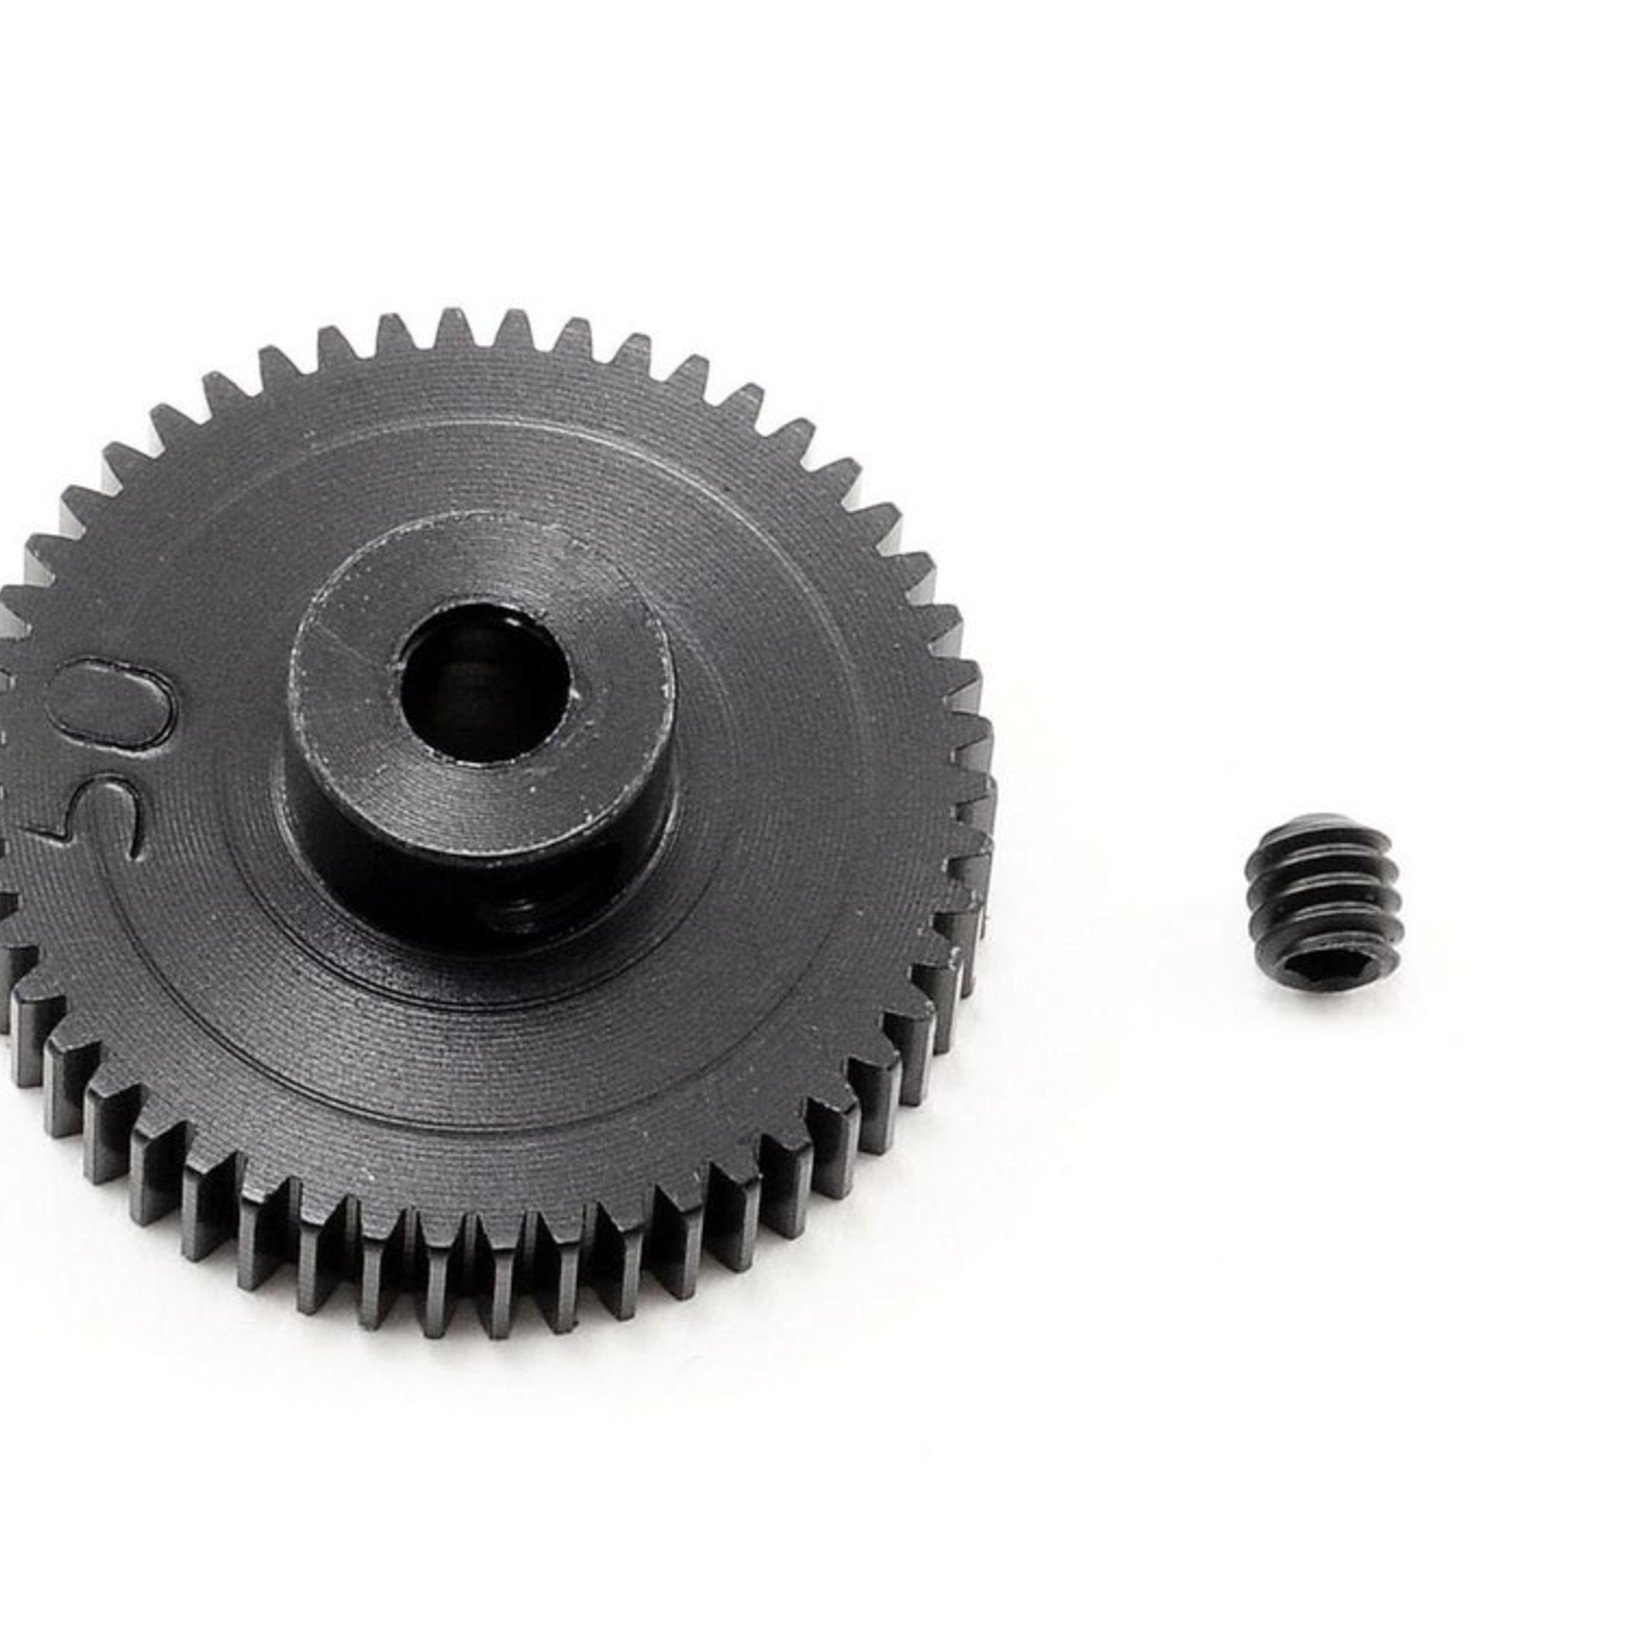 Robinson Racing Products RRP4350 Robinson Racing Products 64P Hard Coated Aluminum Pinion Gear, 50T